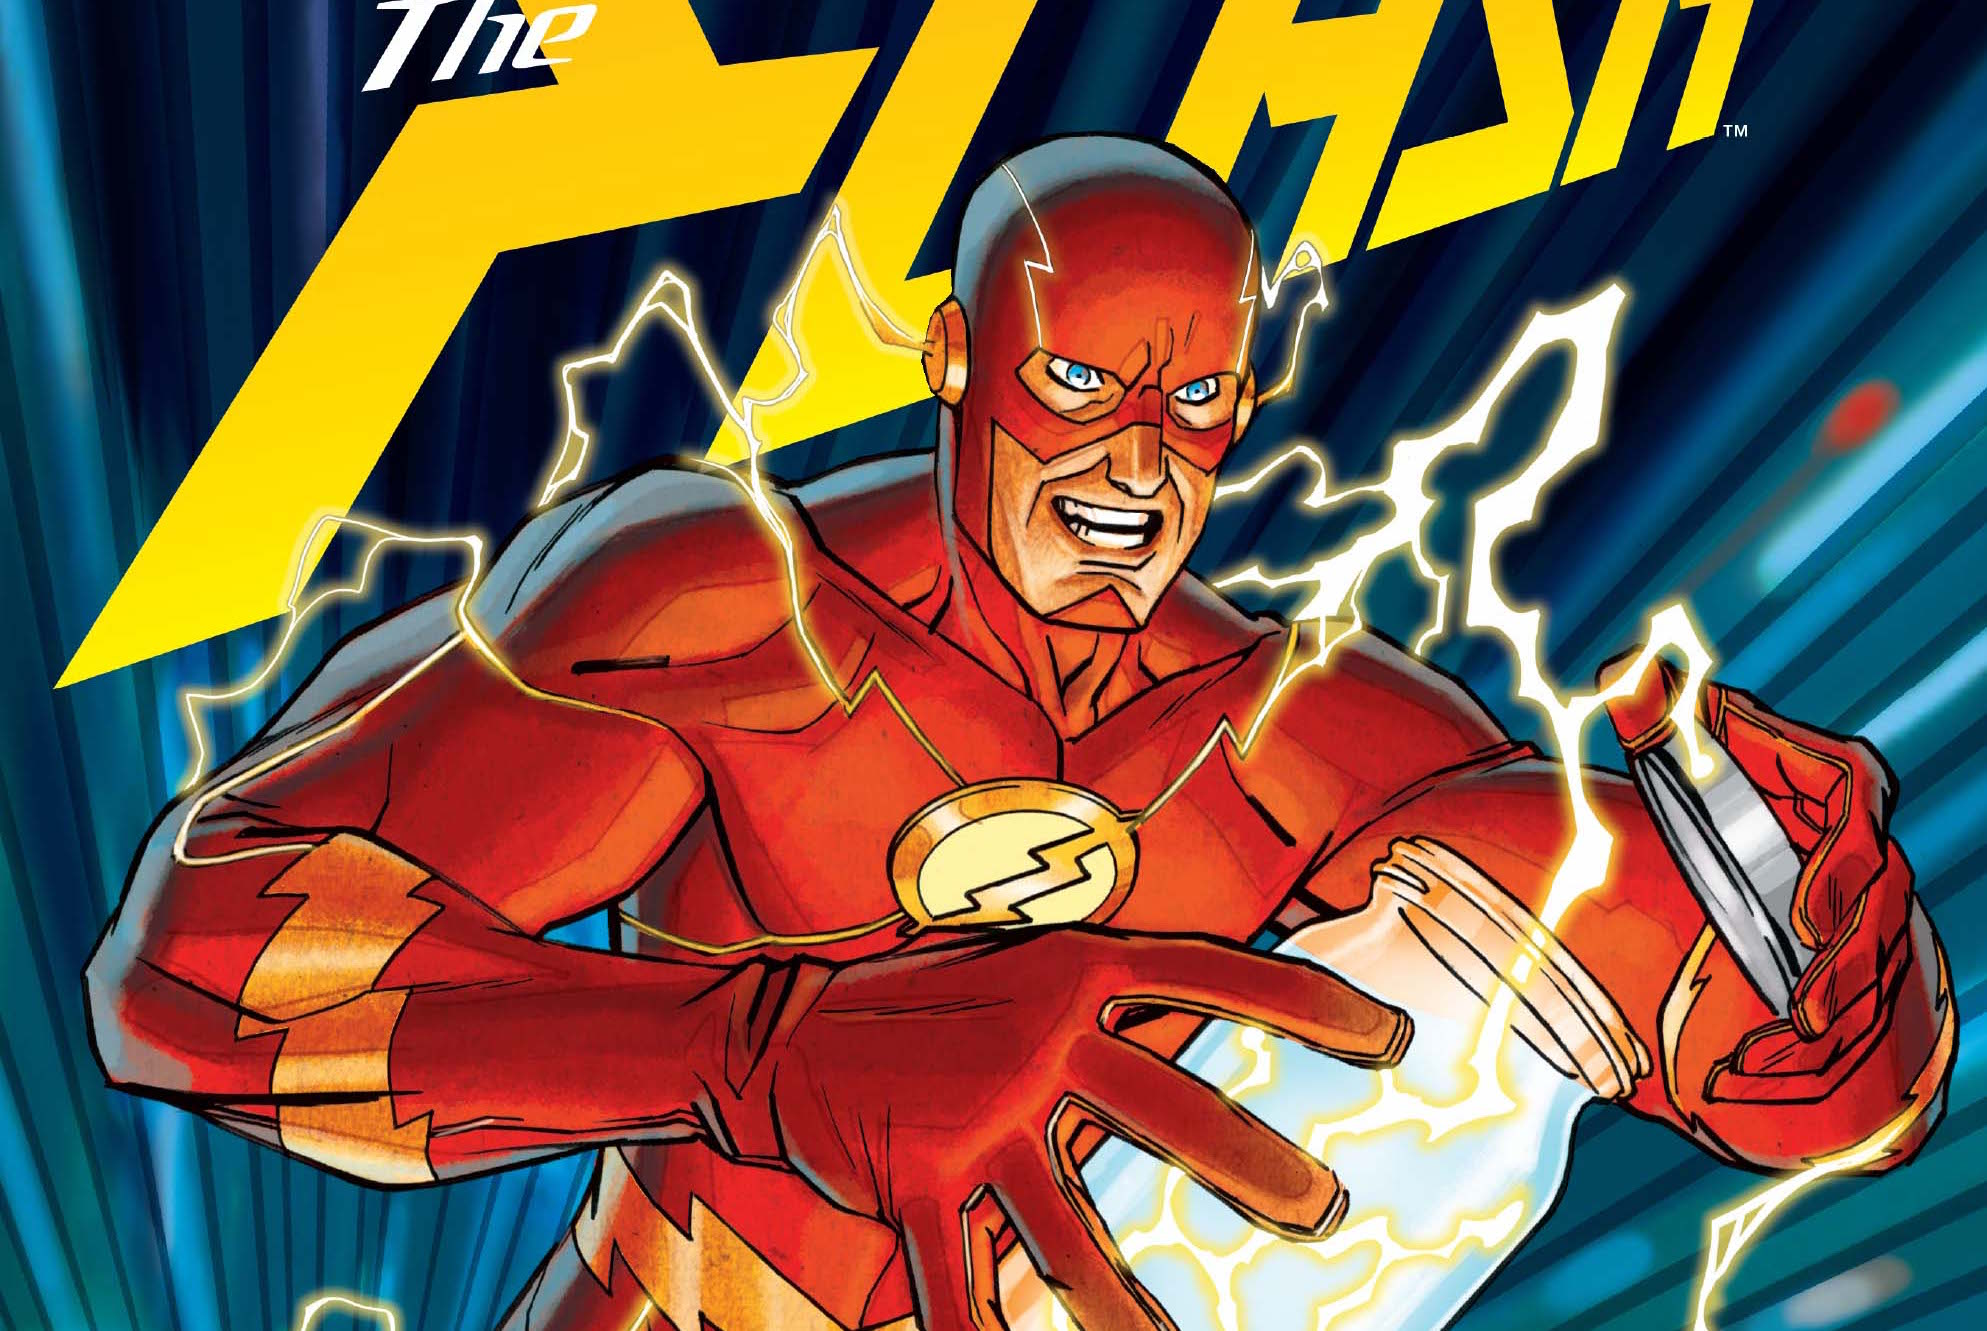 So, I totally missed my DC fix last week and am so excited to pick back up again with The Flash 'Lightning Strikes Twice' part 5! Simply titled 'Barry's Day Off,' we are now on a new path with dozens of new speedsters ready to help protect Central City. Barry Allen finally takes some time to himself and works on starting a new relationship. During his vacation a new serial killer begins hunting the newly made Flashes and Wally West is beginning to see his potential. With all the new happenings in the city, what will Barry need to do to keep his friends and new partners safe? It's going to be an emotional rollercoaster. Ready to ride? Is it good?